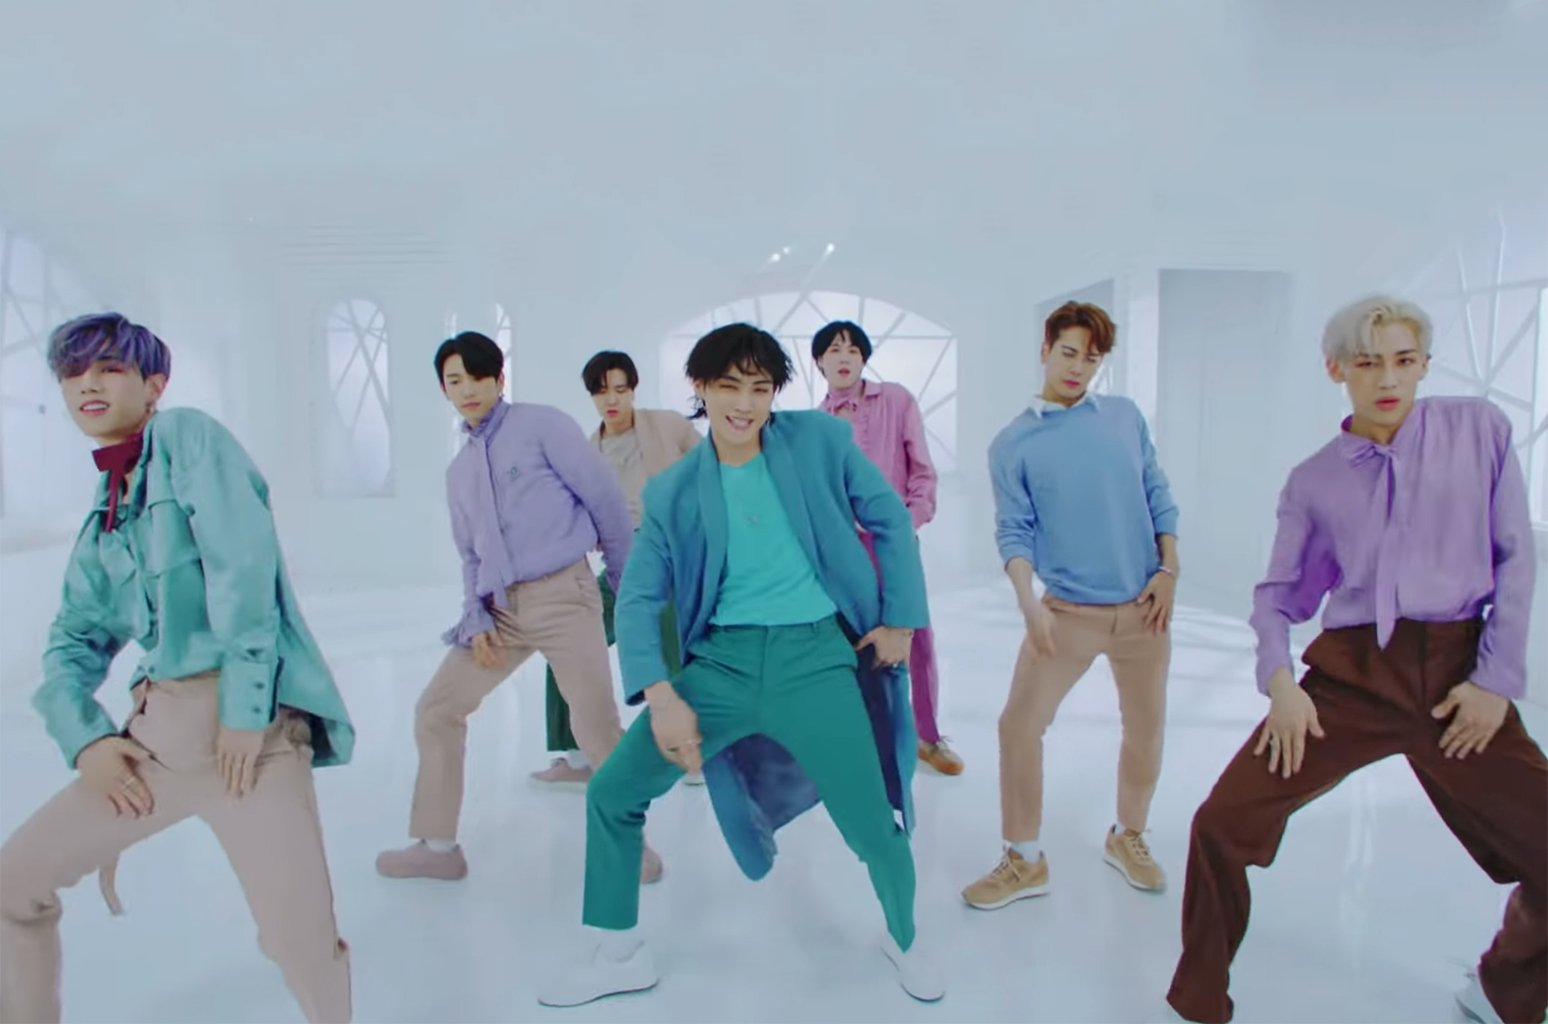 .@GOT7Official sings new single 'Lullaby' in four languages! Watch the music video https://t.co/Fm2gHxsFSR https://t.co/mGEg1ffI2t